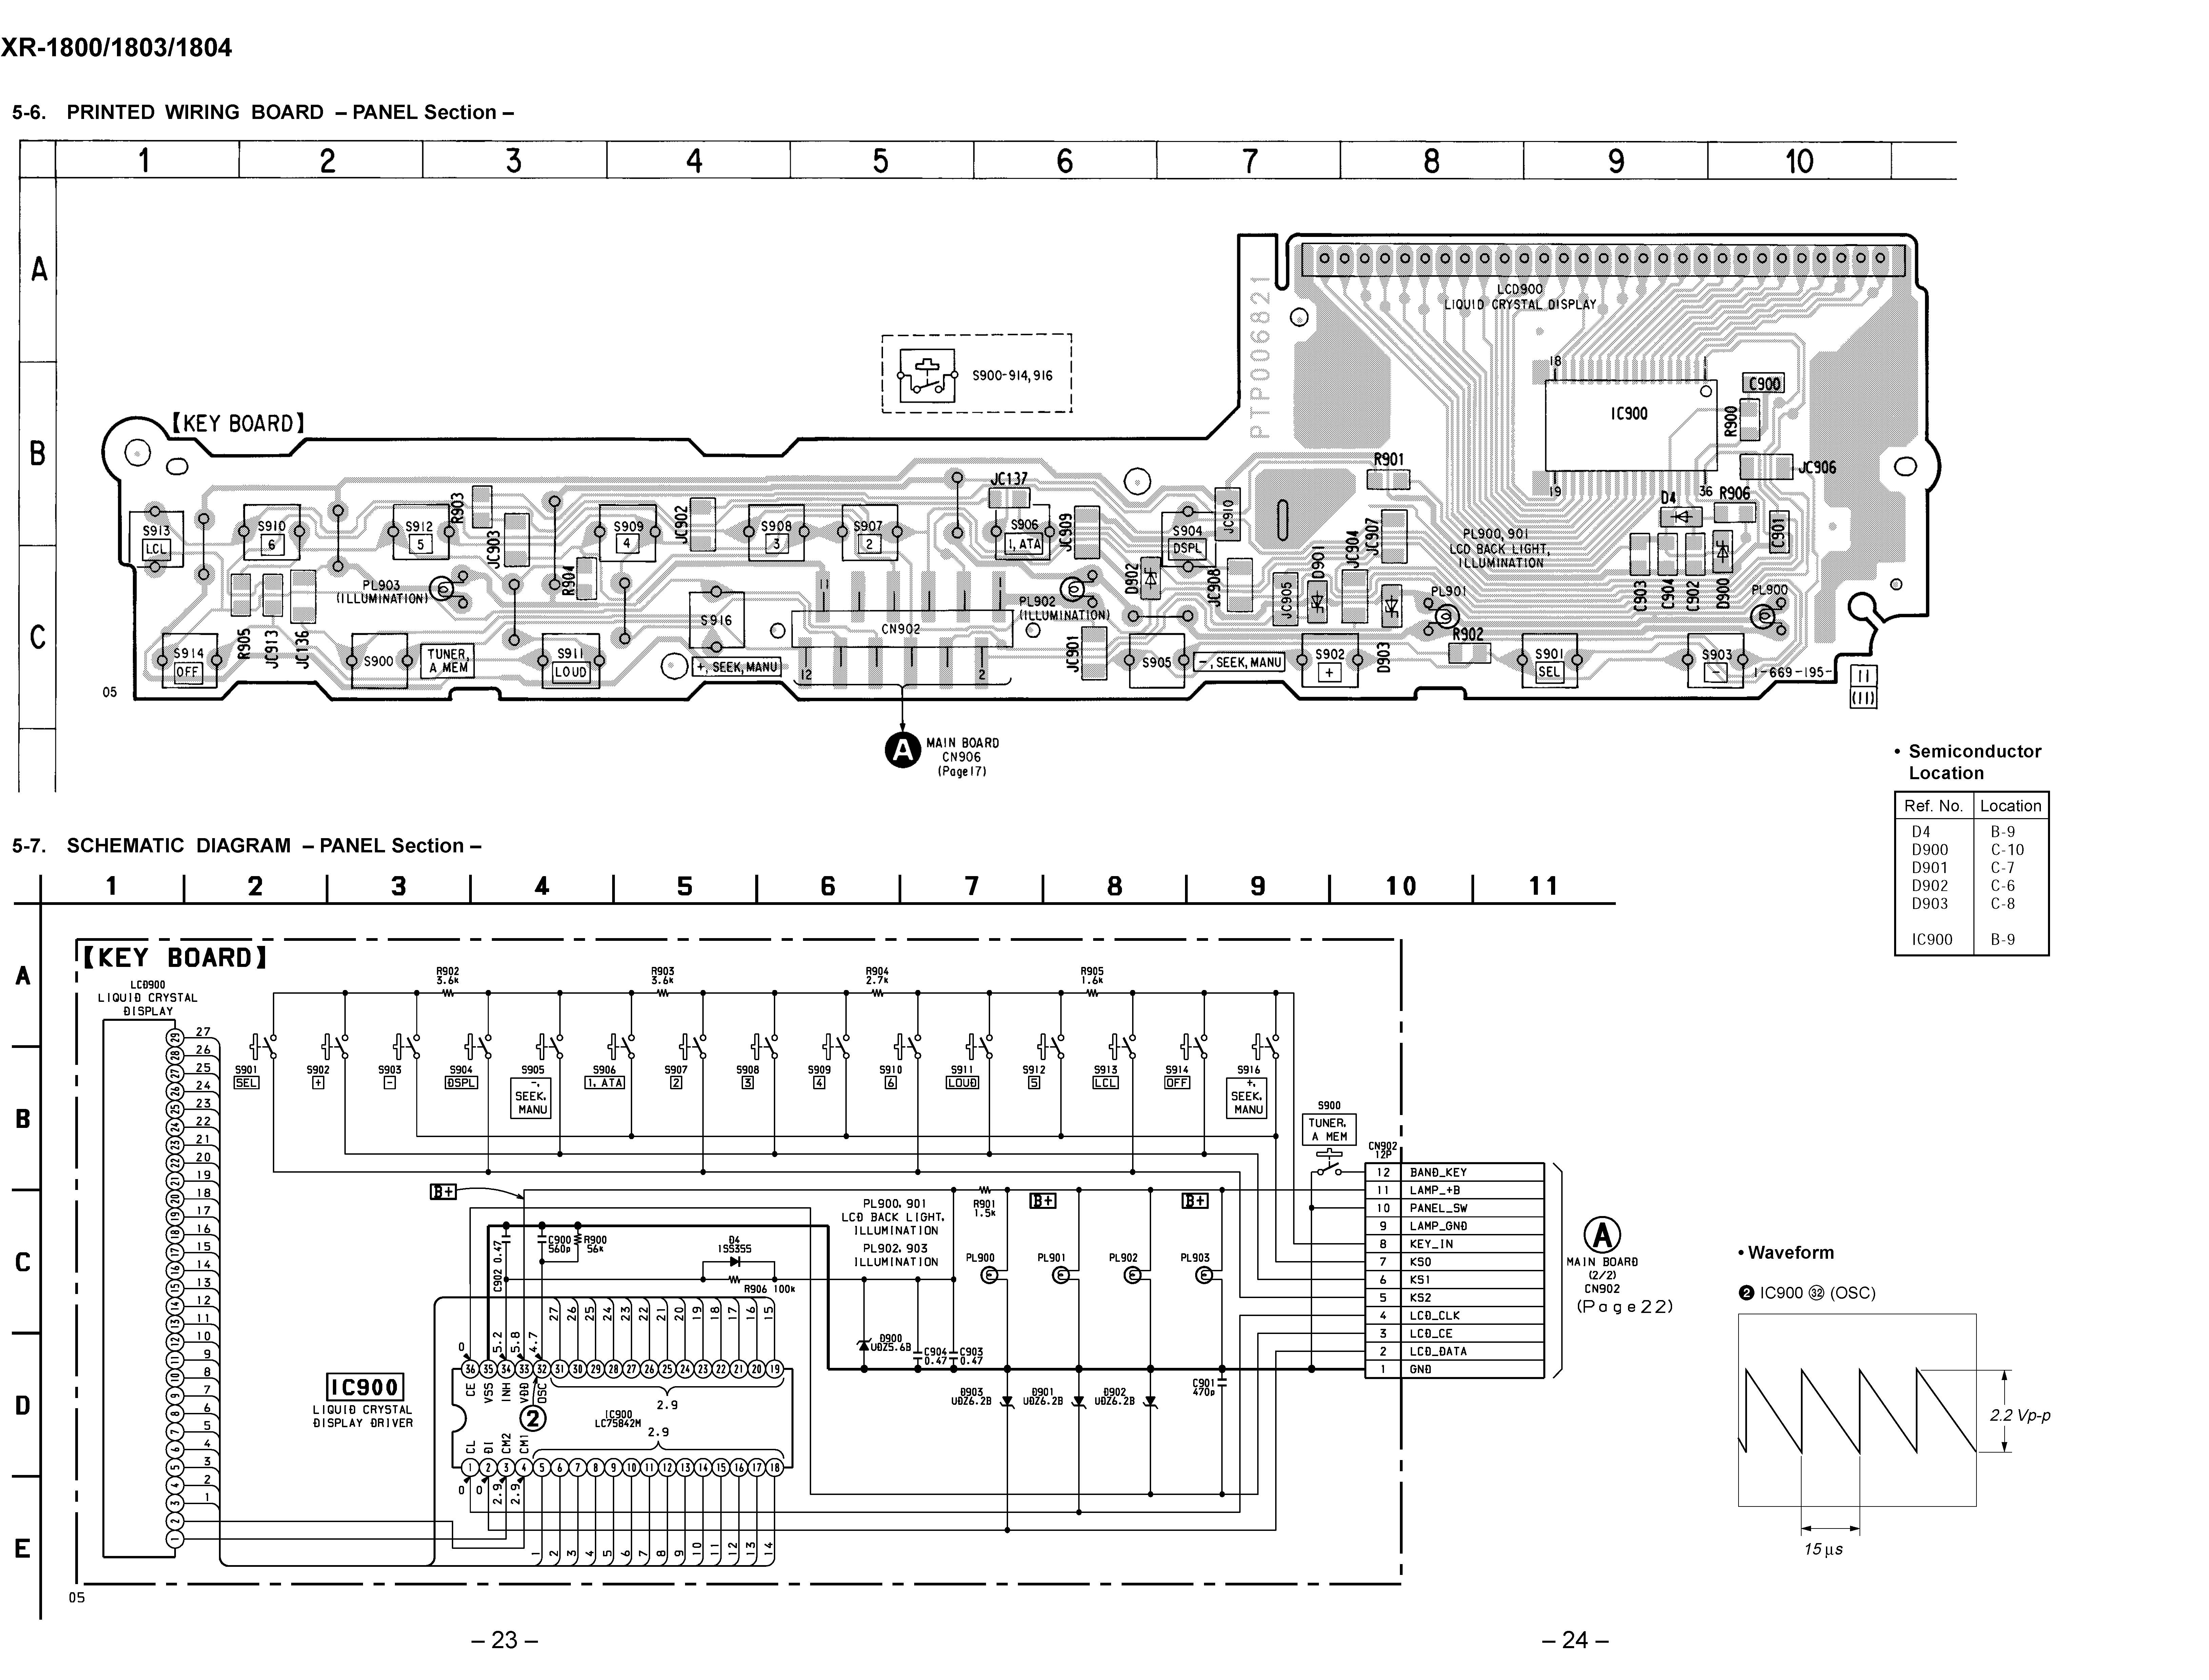 deh p3600 wiring diagram surround sound pioneer color get free image